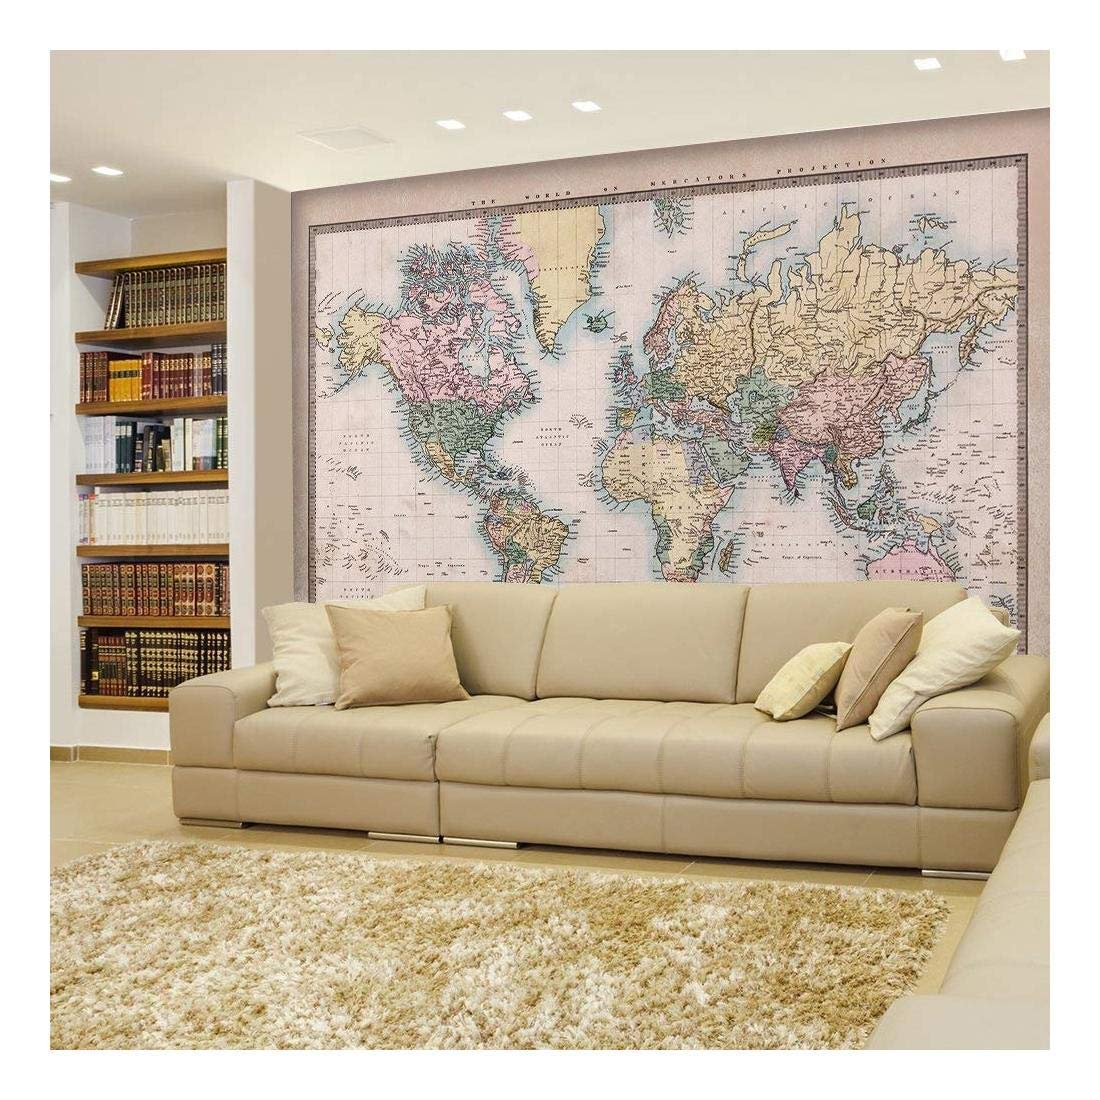 Wall26 - Full Color Antique Mercator Projection Political Map of the World Illustration - Wall Mural, Removable Sticker, Home Decor - 66x96 inches